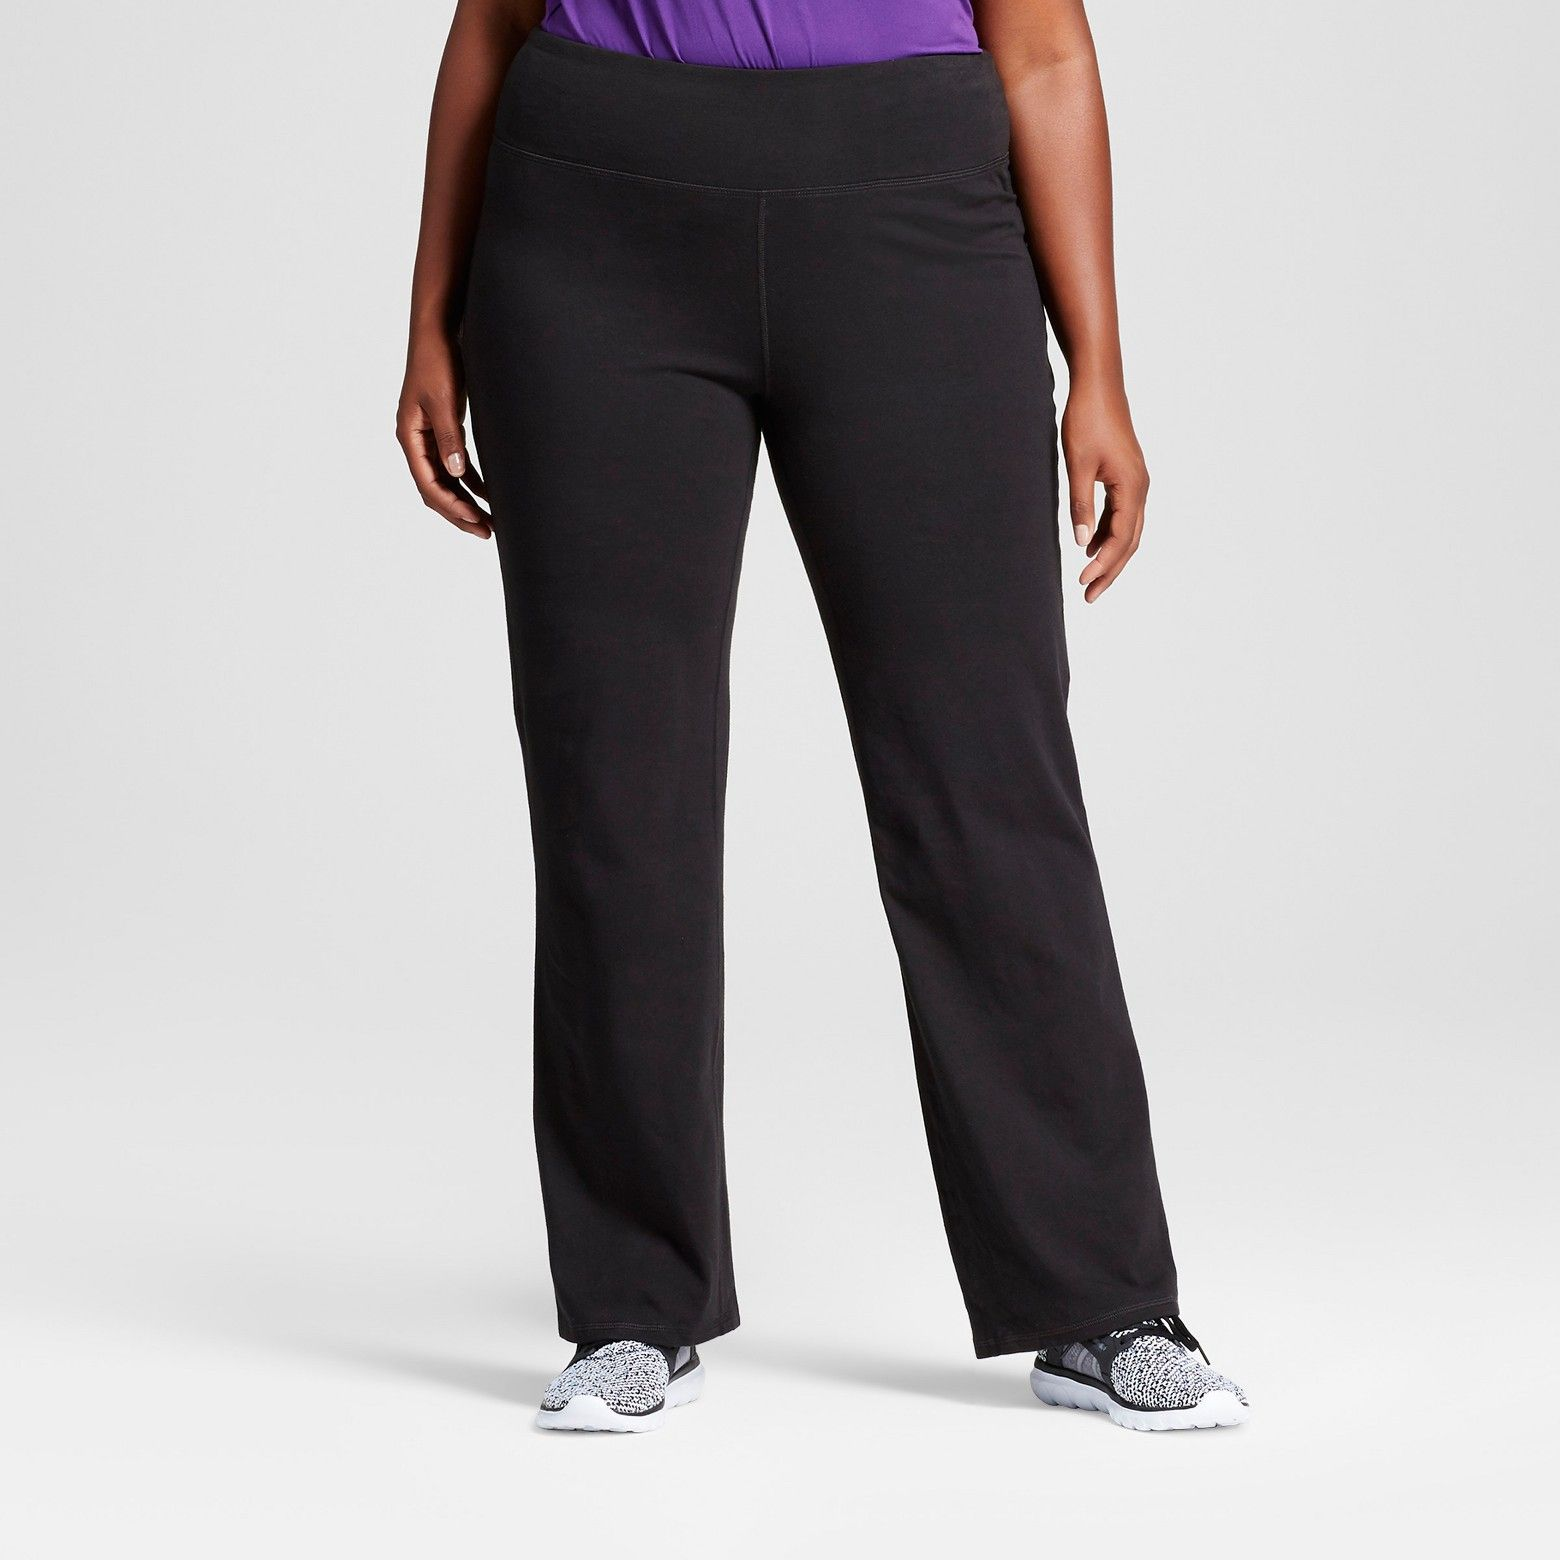 b0b7b308fcc5 The Women s Plus Size Cotton Spandex Pant from C9 Champion® features our  blend of cotton and spandex fabric that wicks moisture while providing the  comfort ...